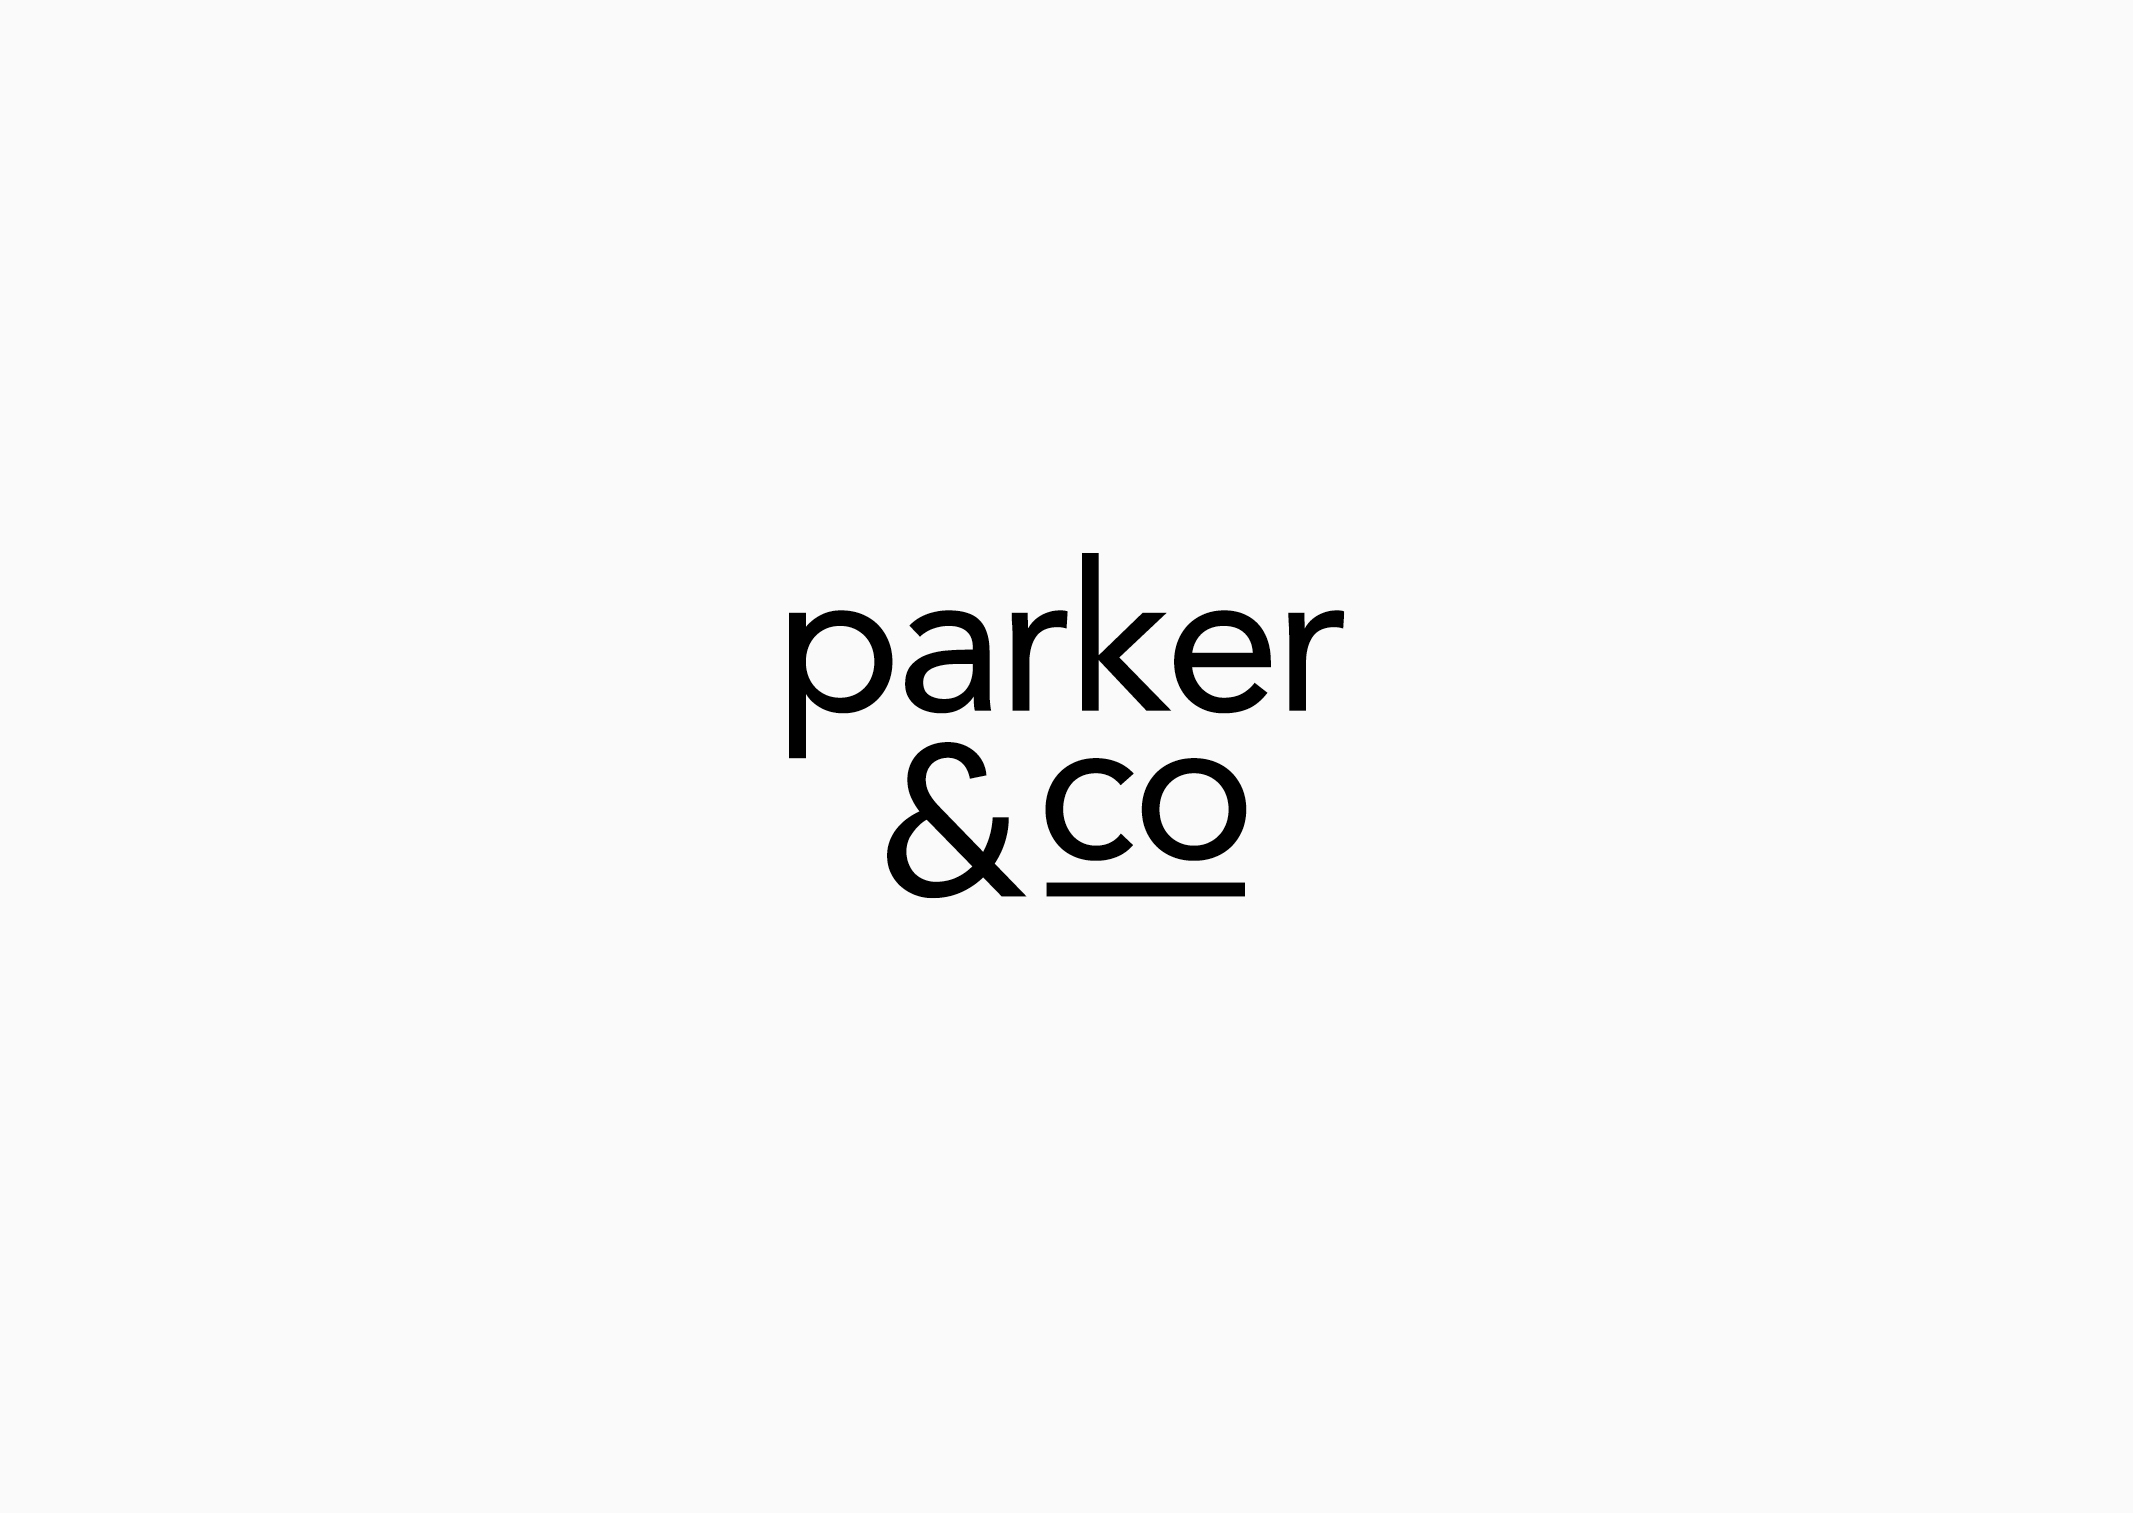 Parker and Co refined identity – simplified and streamlined sans serif typography